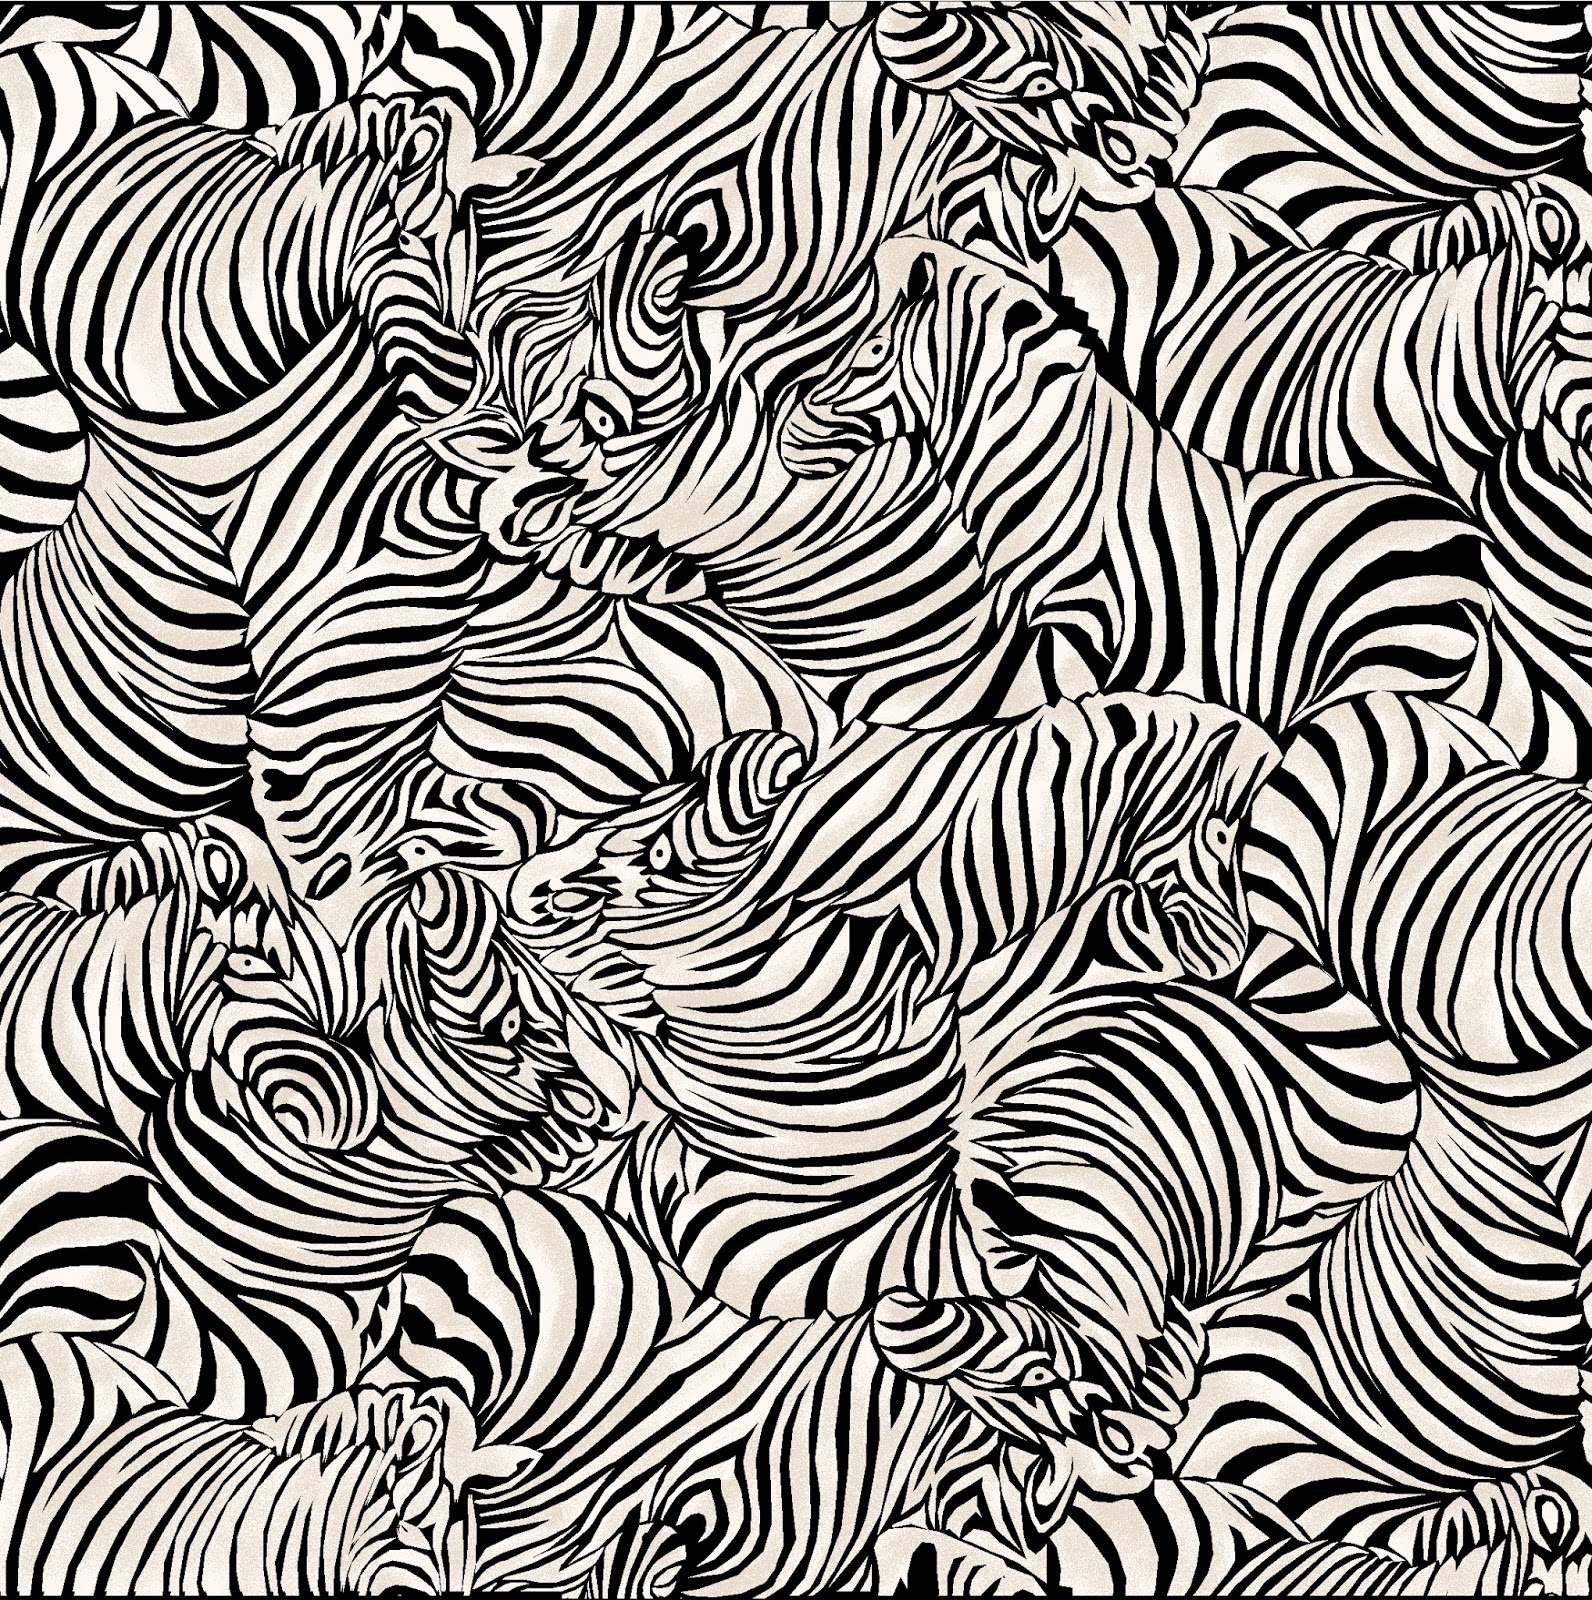 The zebra skin is more of an abstract pattern, and I think it will work  really well as a texture.